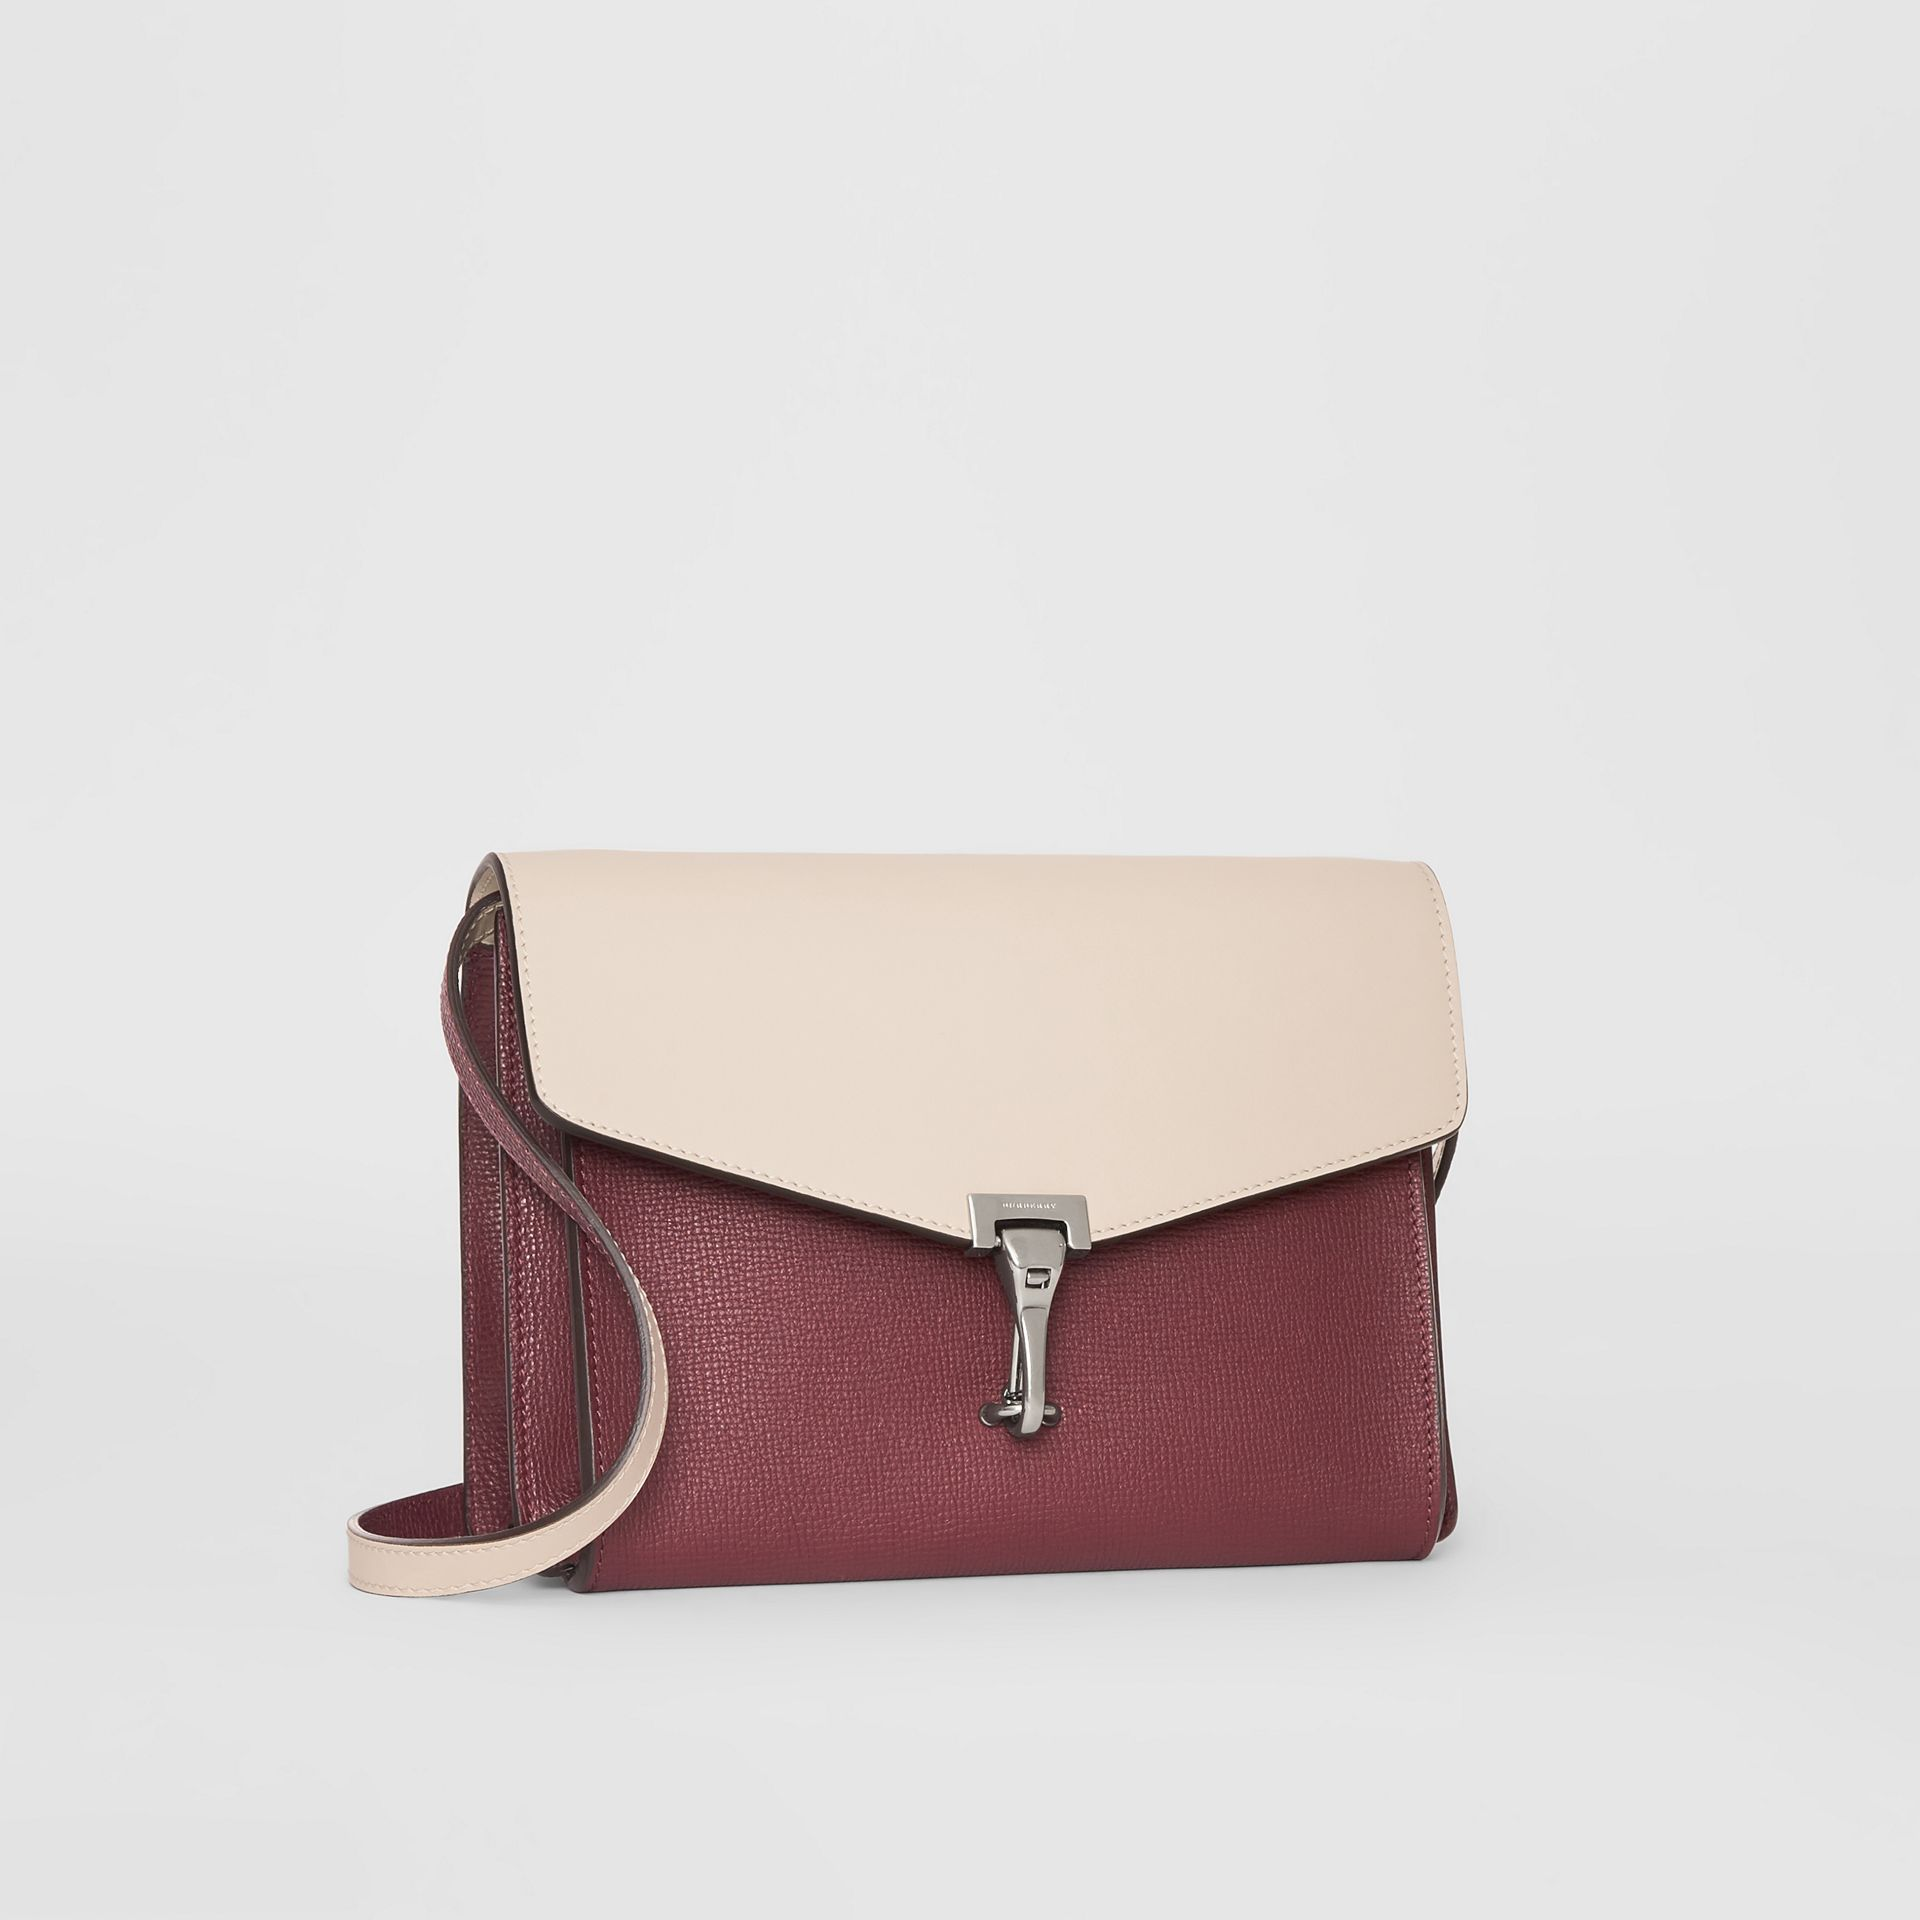 Two-tone Leather Crossbody Bag in Mahogany Red/limestone - Women | Burberry Hong Kong - gallery image 6